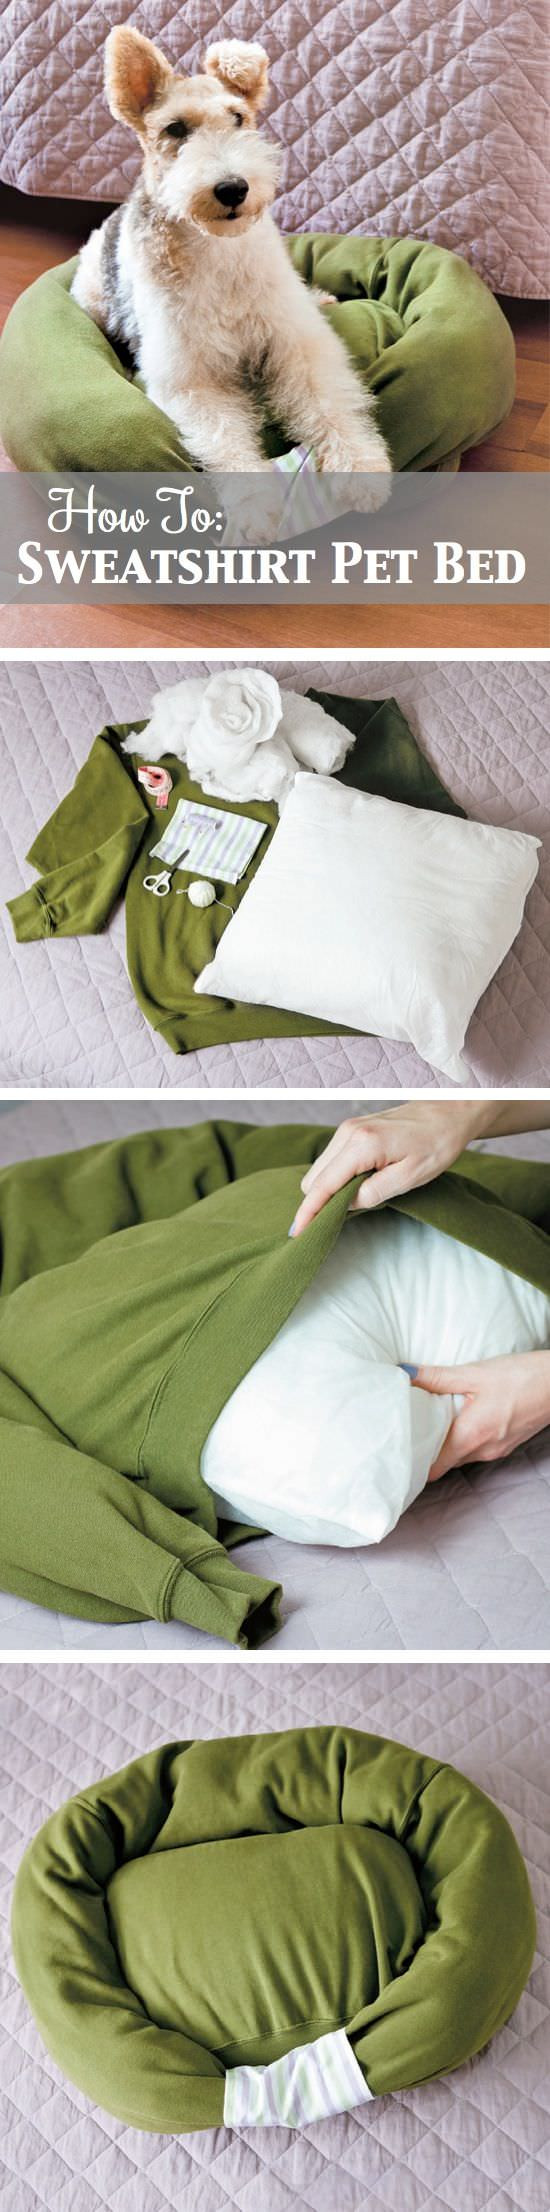 Best ideas about DIY Dog Bed Ideas . Save or Pin 16 Adorable DIY Pet Bed Ideas Style Motivation Now.